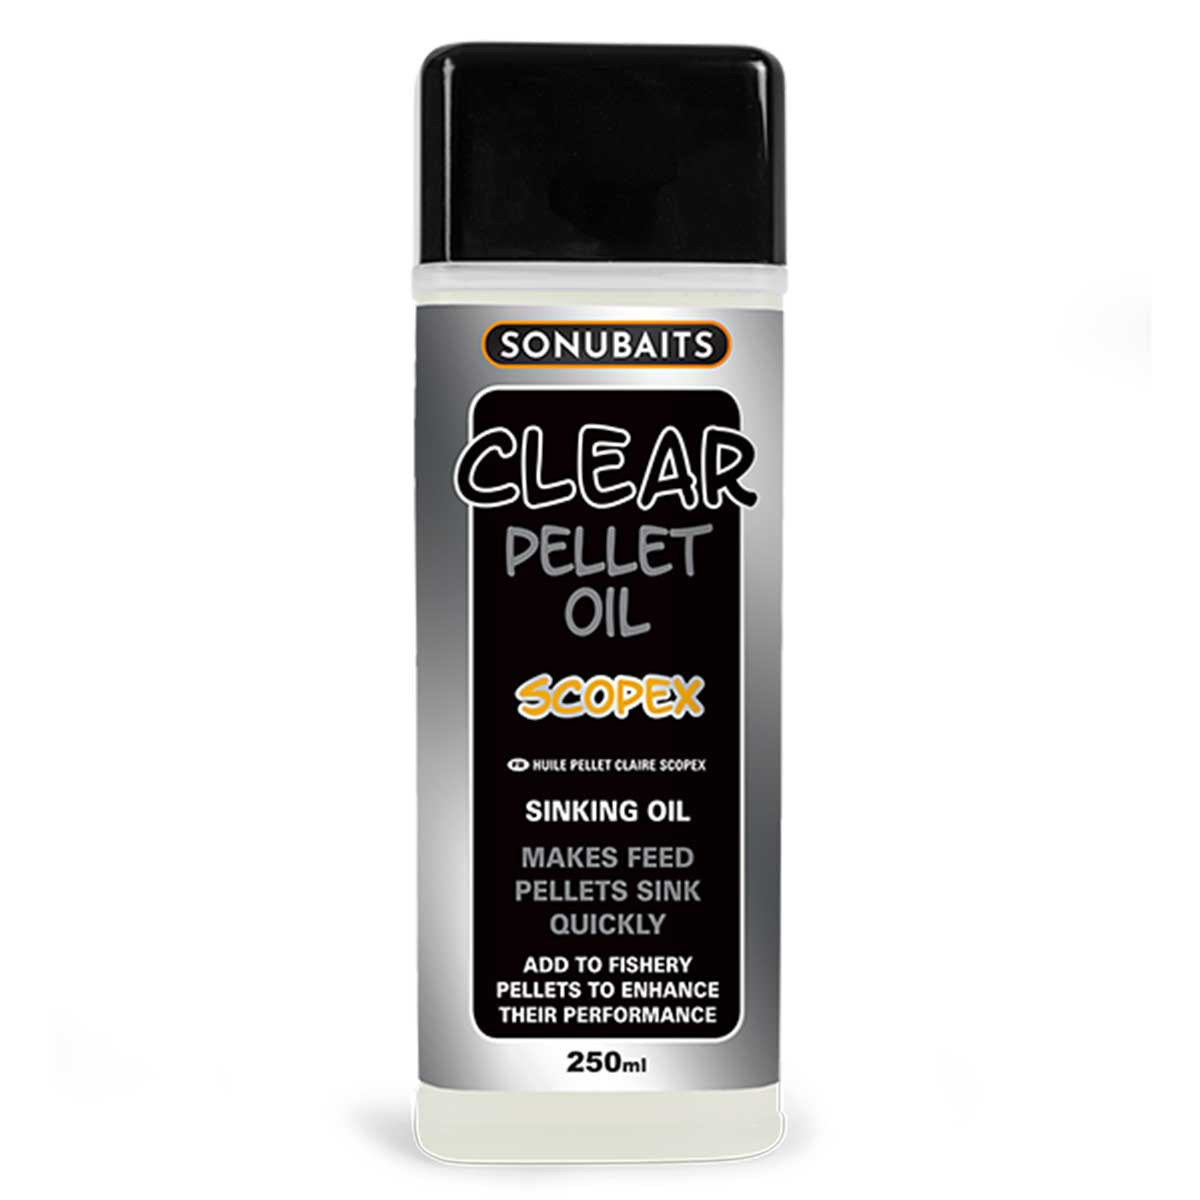 Clear Pellet Oil - Scopex